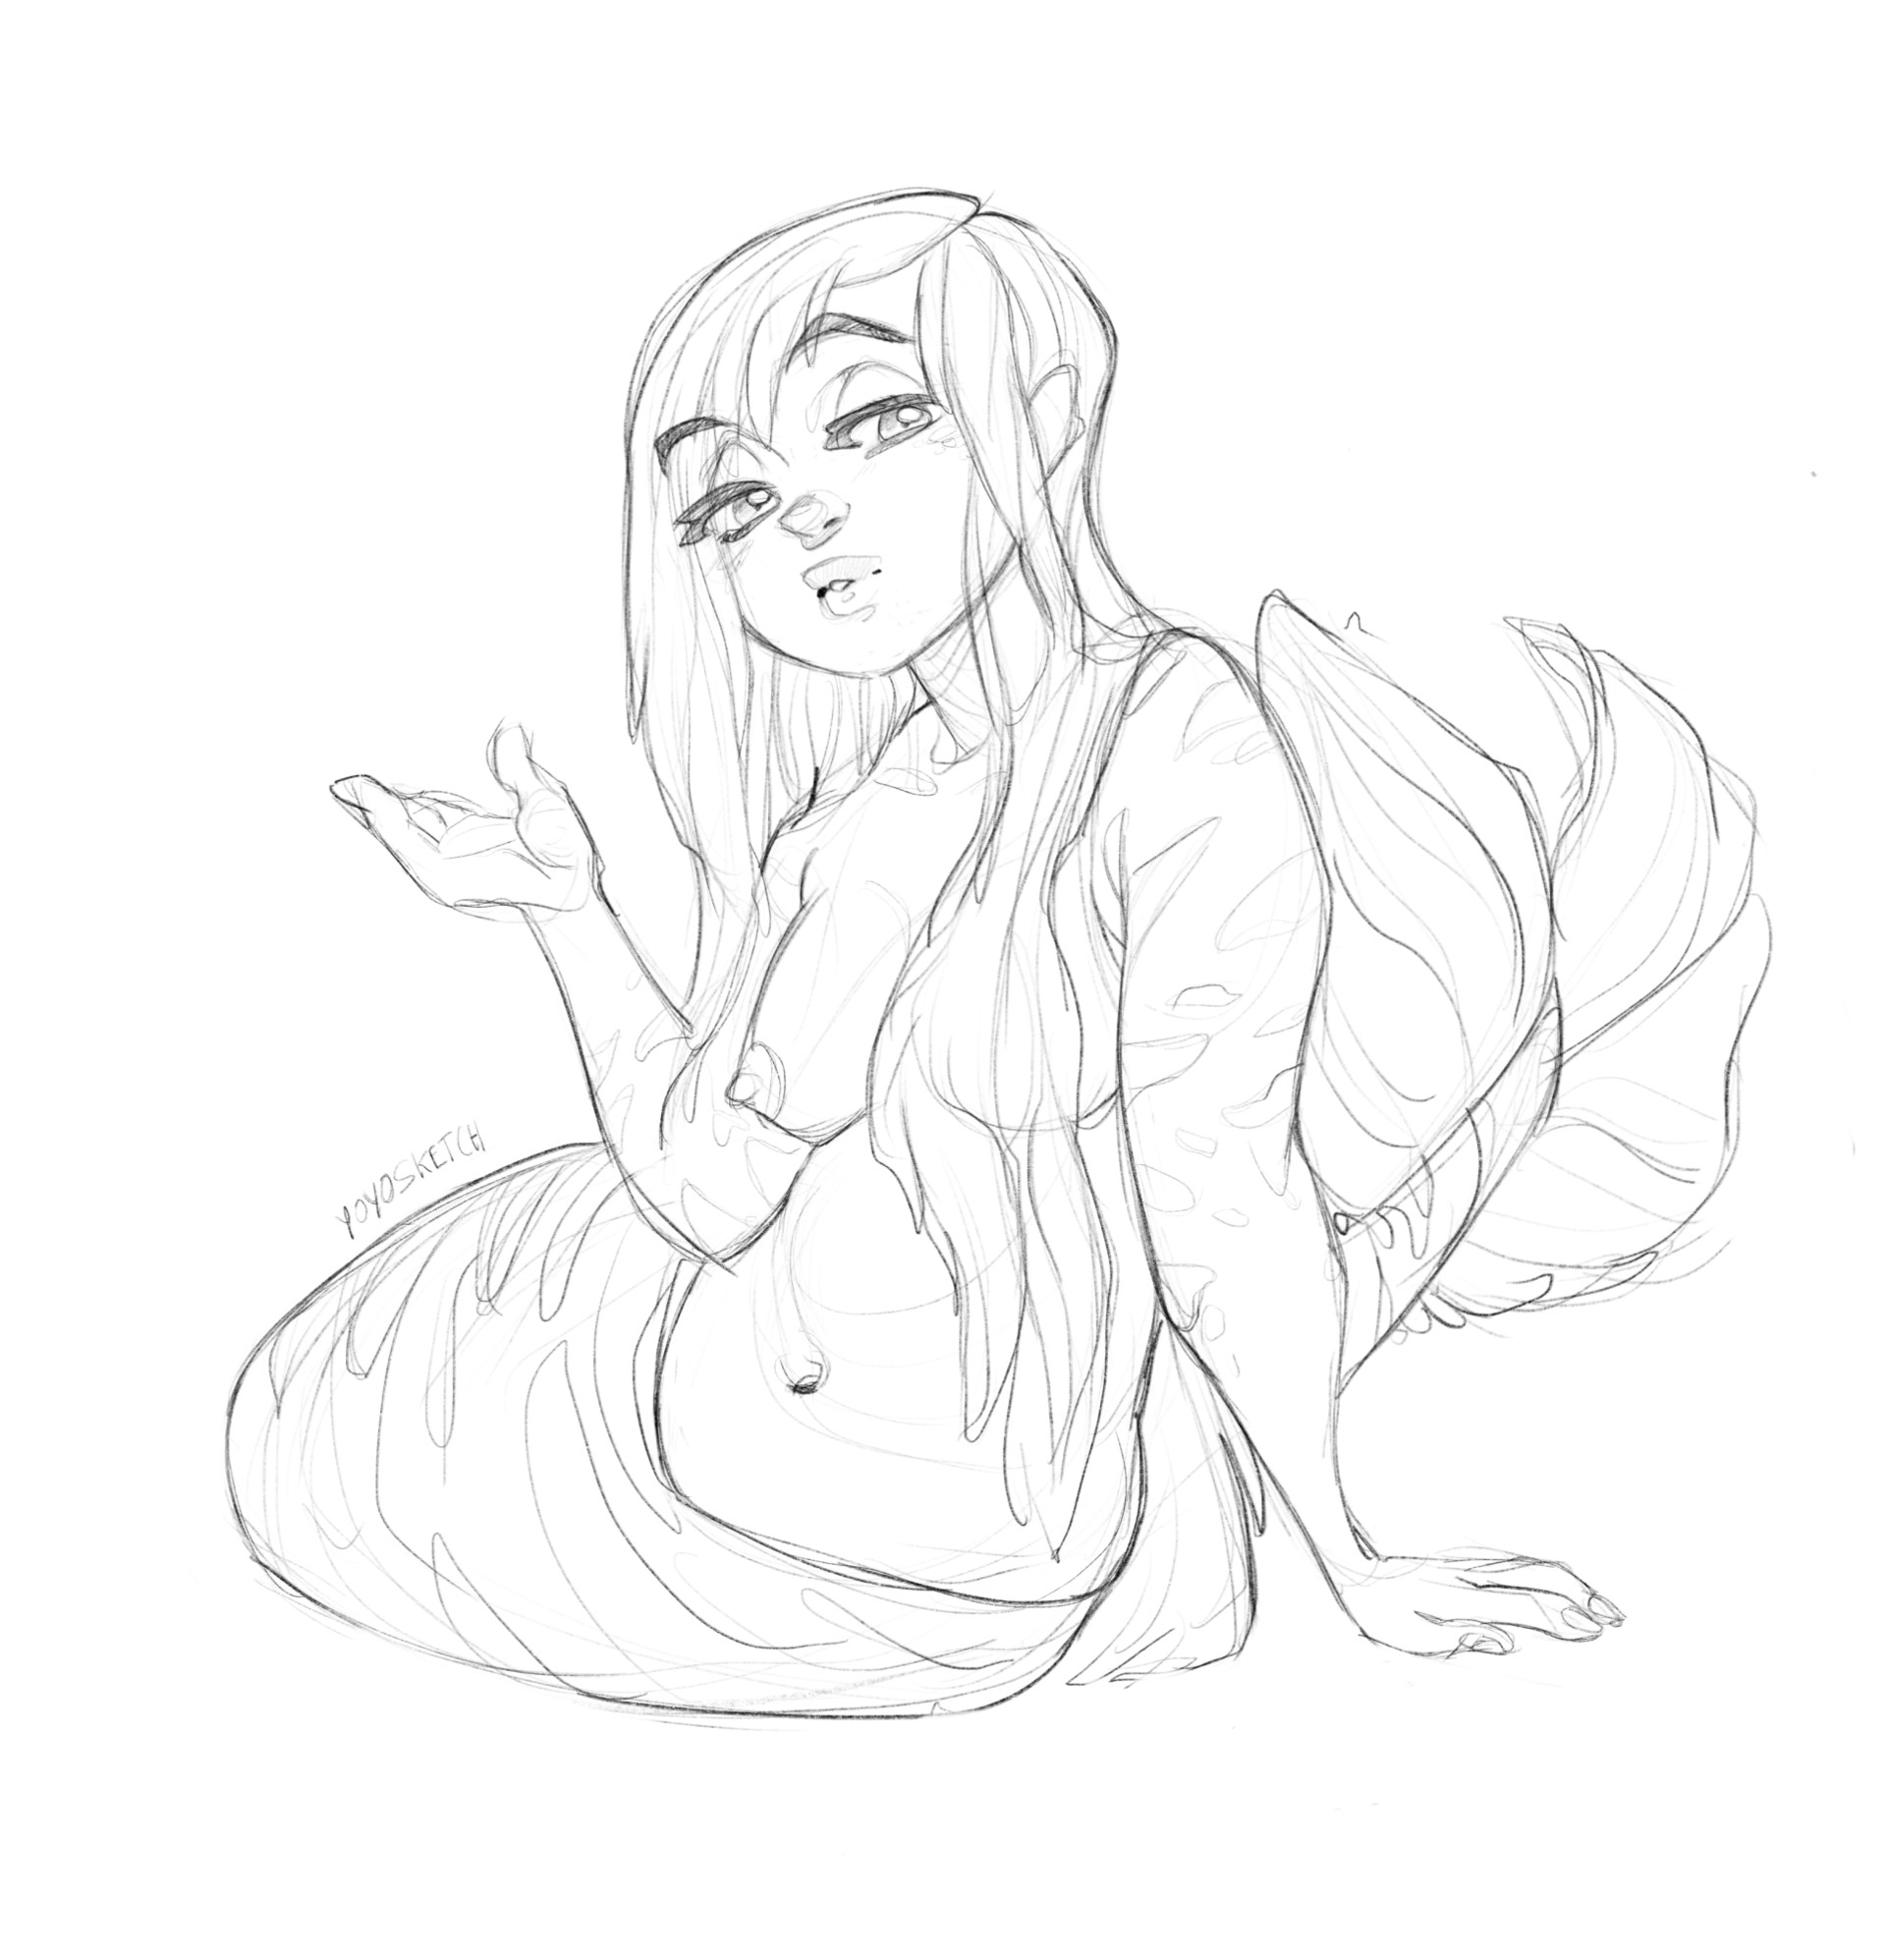 Artstation Mermaid Sketch Yoyo Sketch